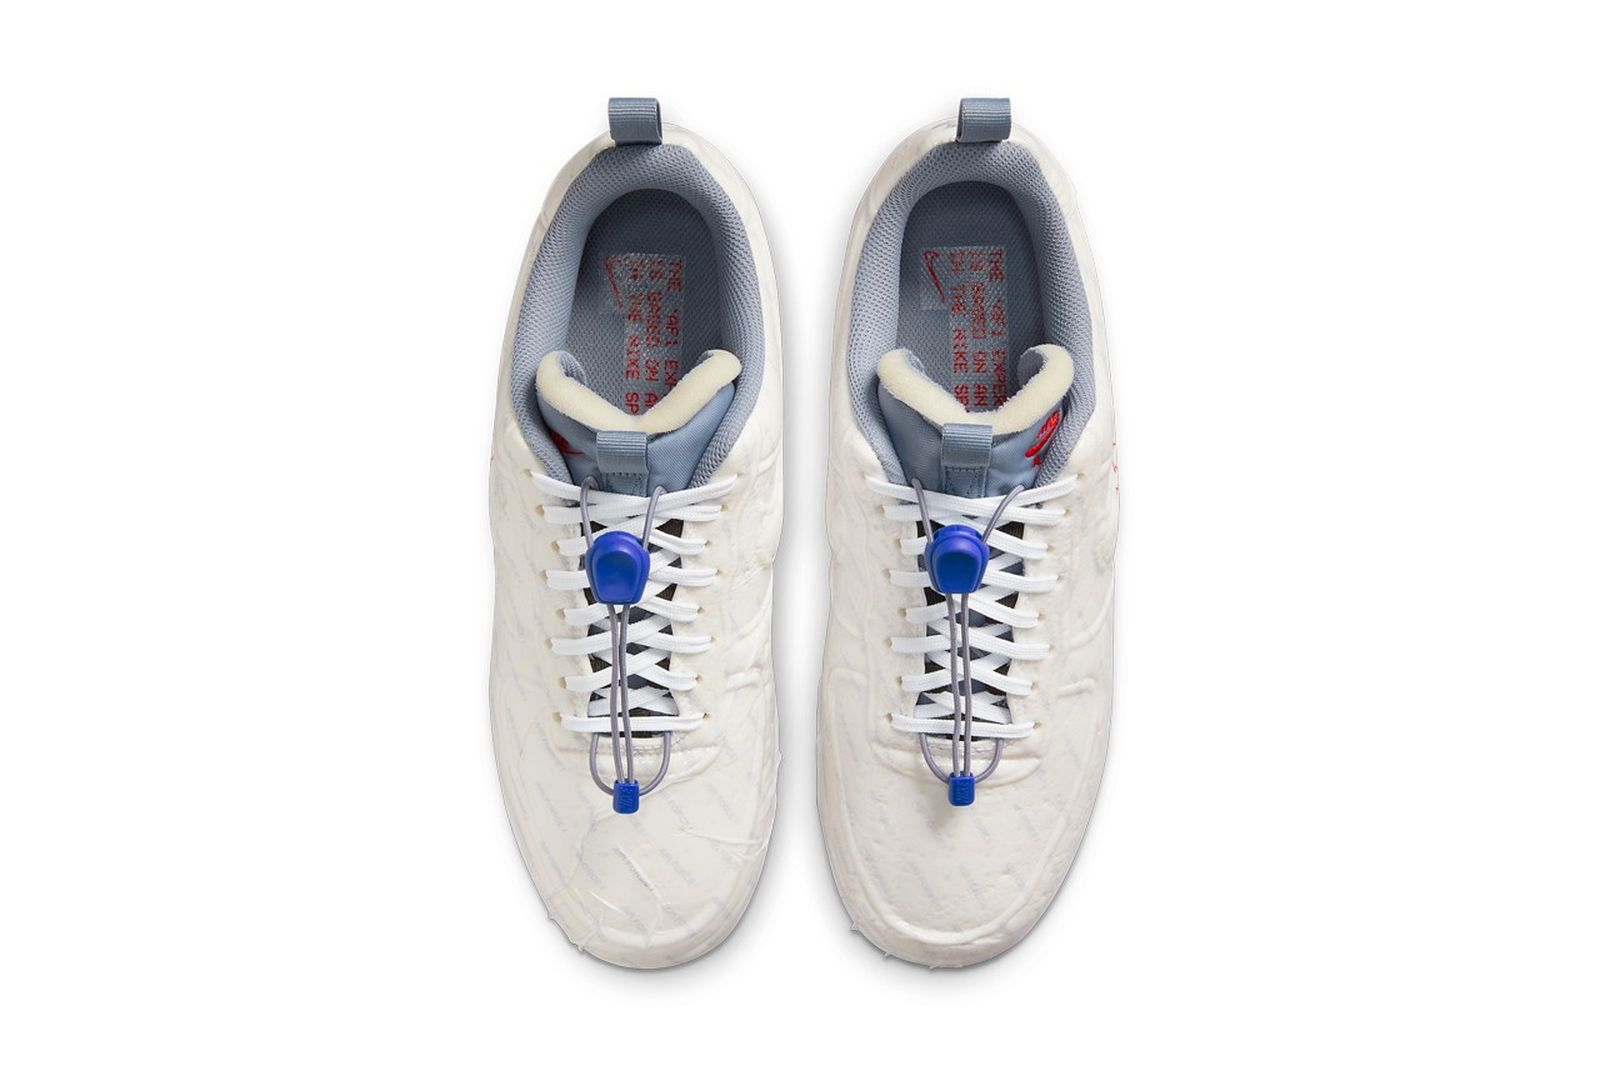 usps-nike-air-force-1-experimental-release-date-price-04